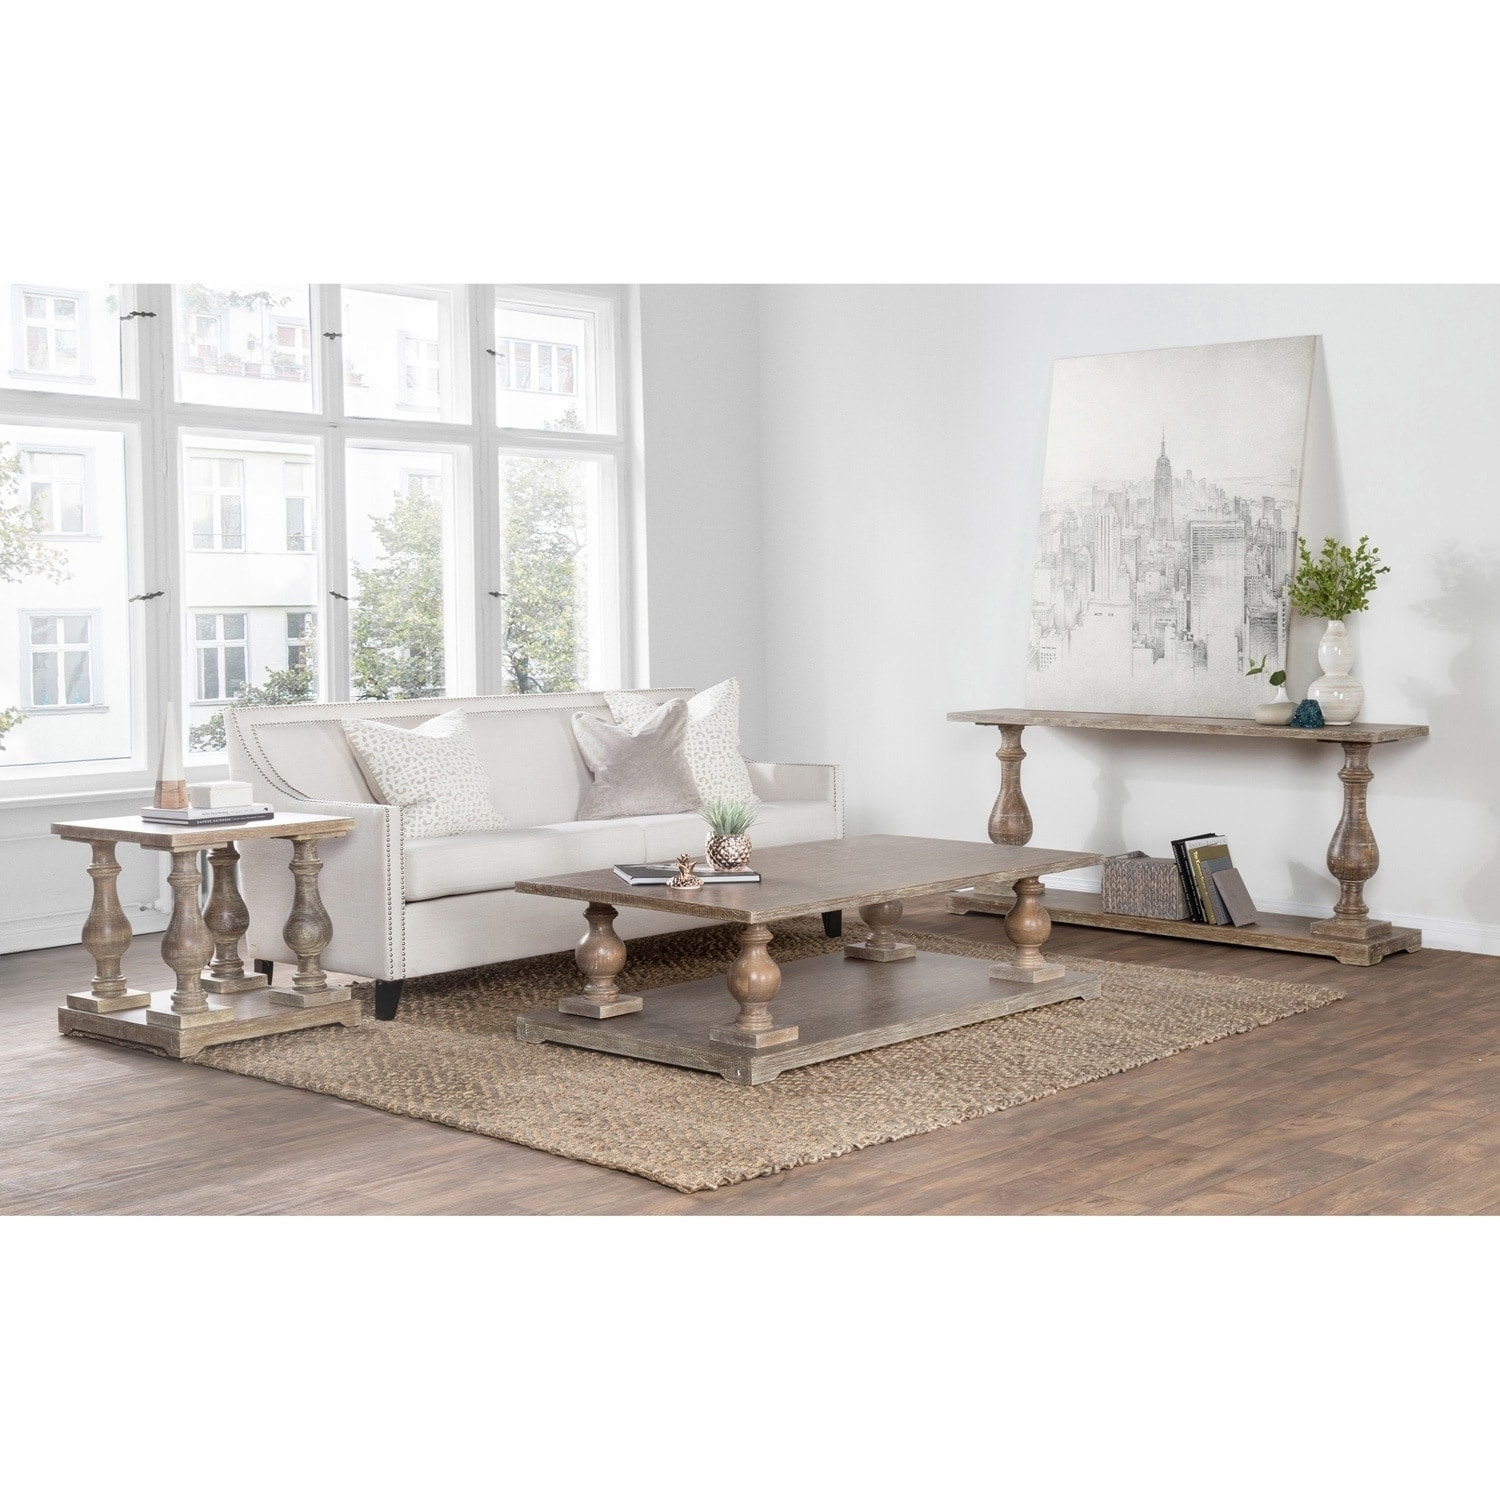 Parvin 71 Inch Reclaimed Pine Console Table By Kosas Home Overstock 10353471